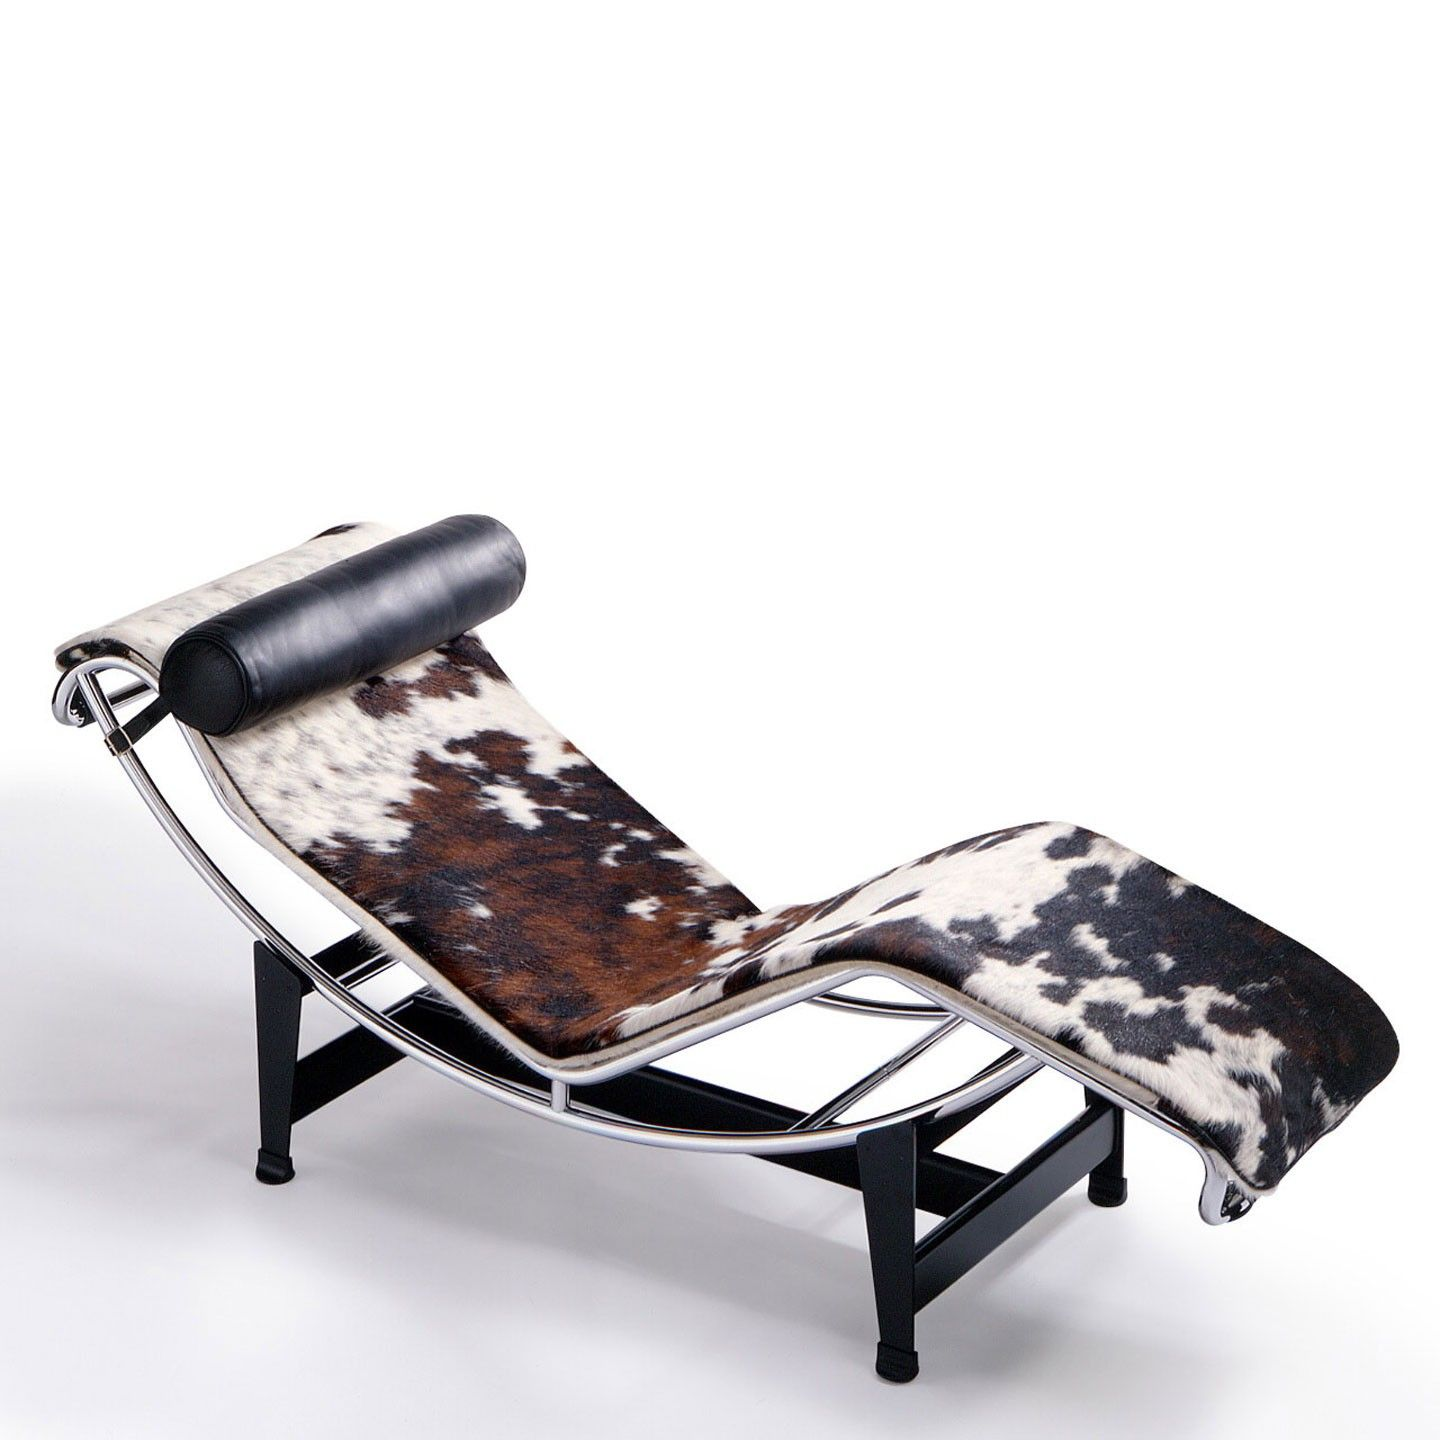 Lc4 Chaise Longue Le Corbusier Designed 84 Years Ago But Still Seems So Modern Iconic Furniture Design Le Corbusier Chaise Longue